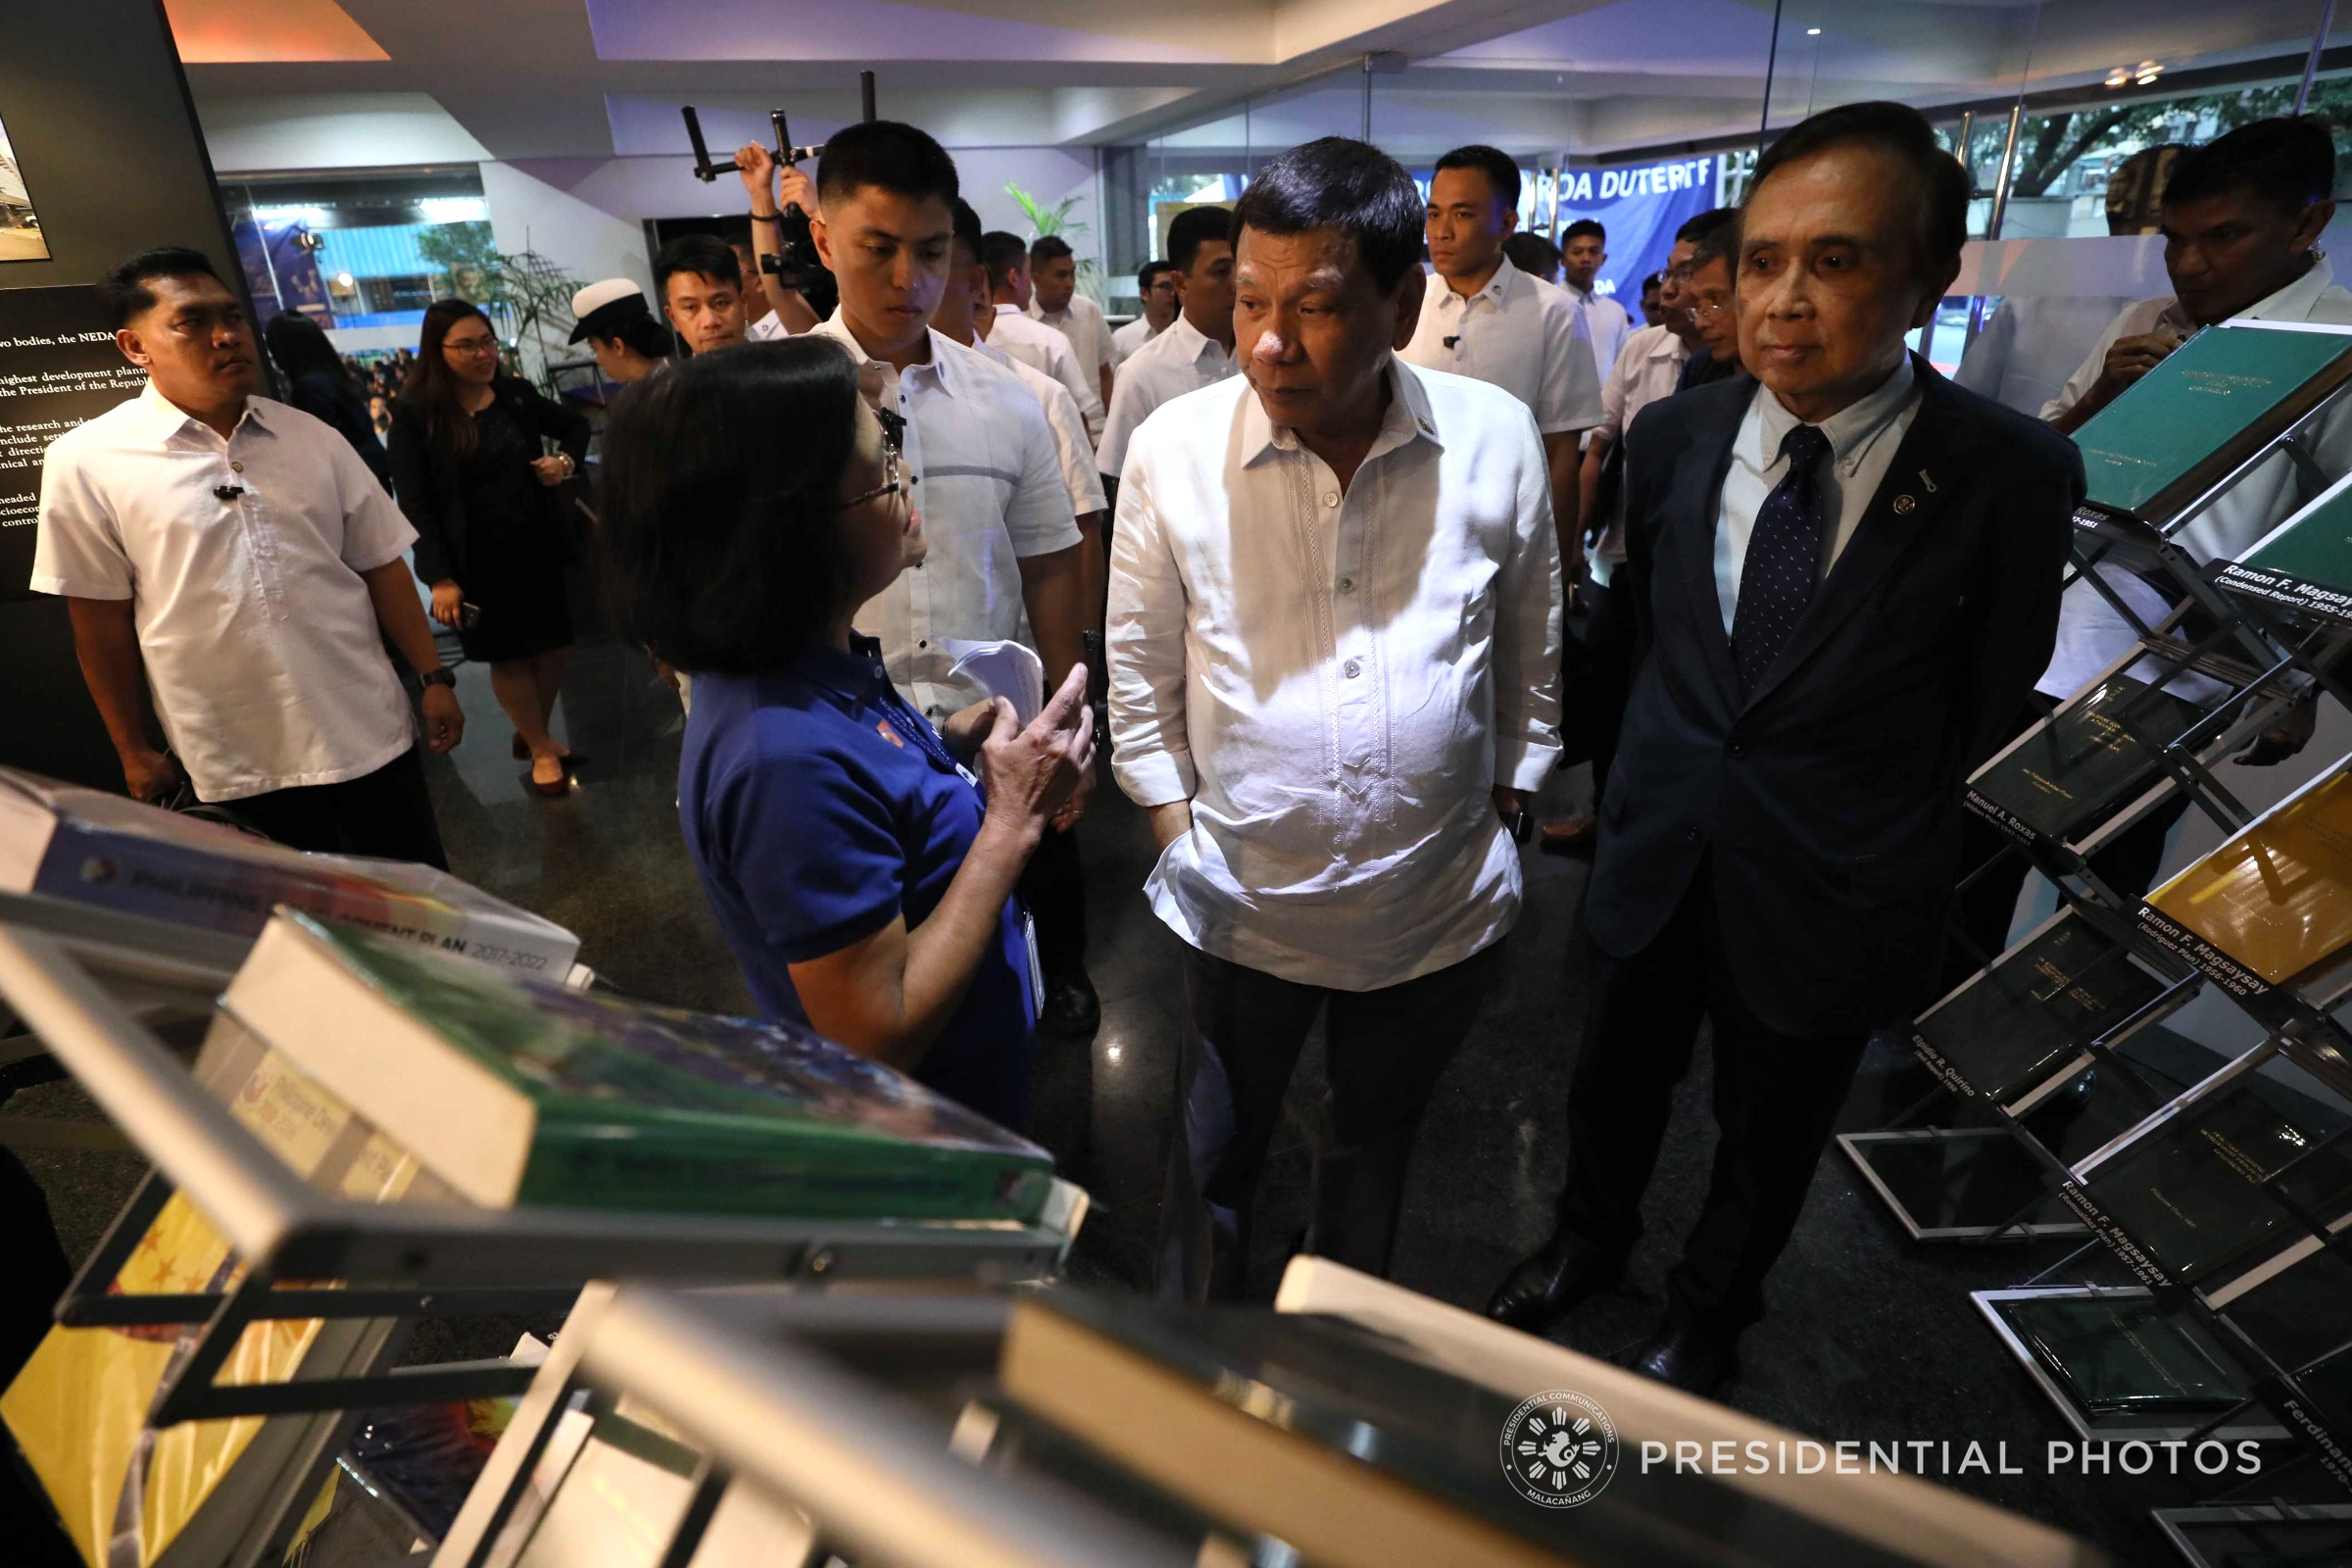 NEDA ANNIVERSARY.President Rodrigo R. Duterte is given a briefing on the history of the National Economic and Development Authority (NEDA) by NEDA Supervising Economic Development Specialist Edita Dumo during the 45th Founding Anniversary of the National Economic and Development Authority (NEDA) at the NEDA Central Office in Pasig City on February 6, 2018. Also in the photo is NEDA Director General Ernesto Pernia. (Ace Morandante/Presidential Photo)